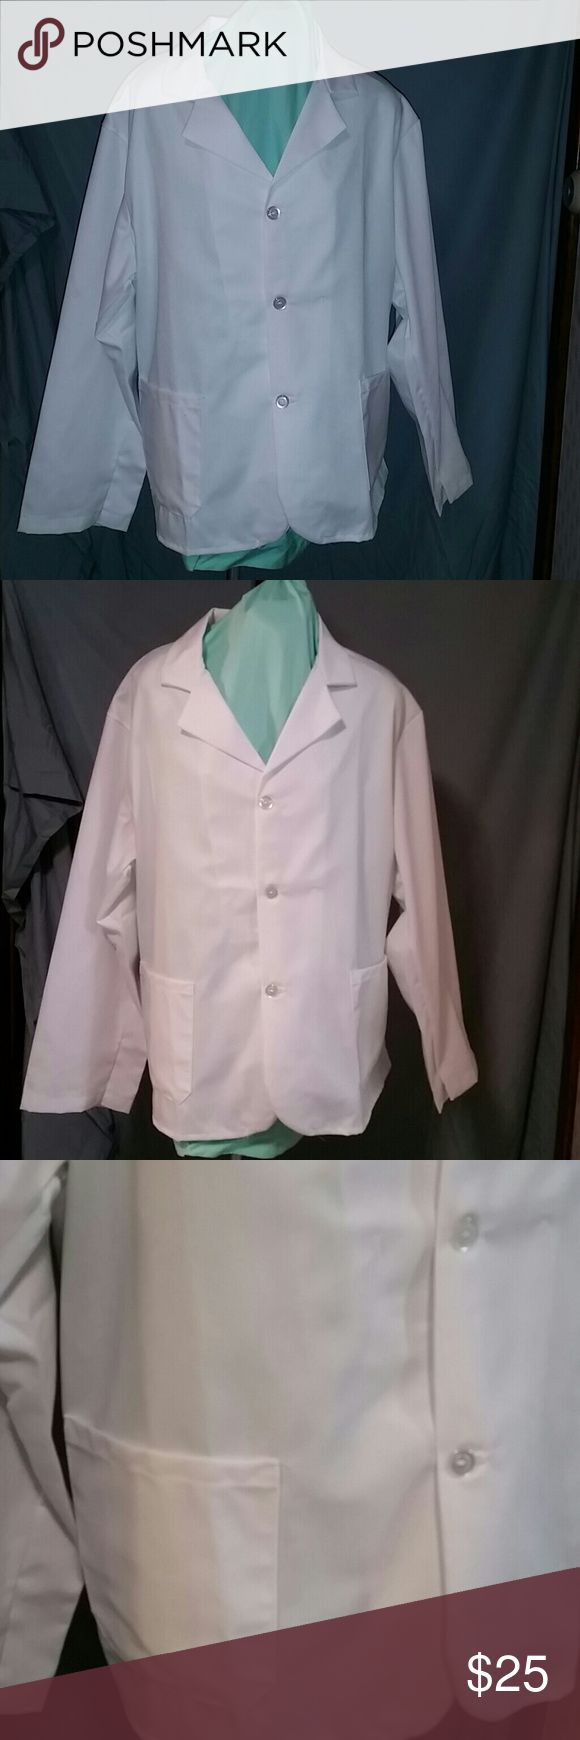 Med / lab coat White  size L medical / lab coat button up and pockets marketing force Other